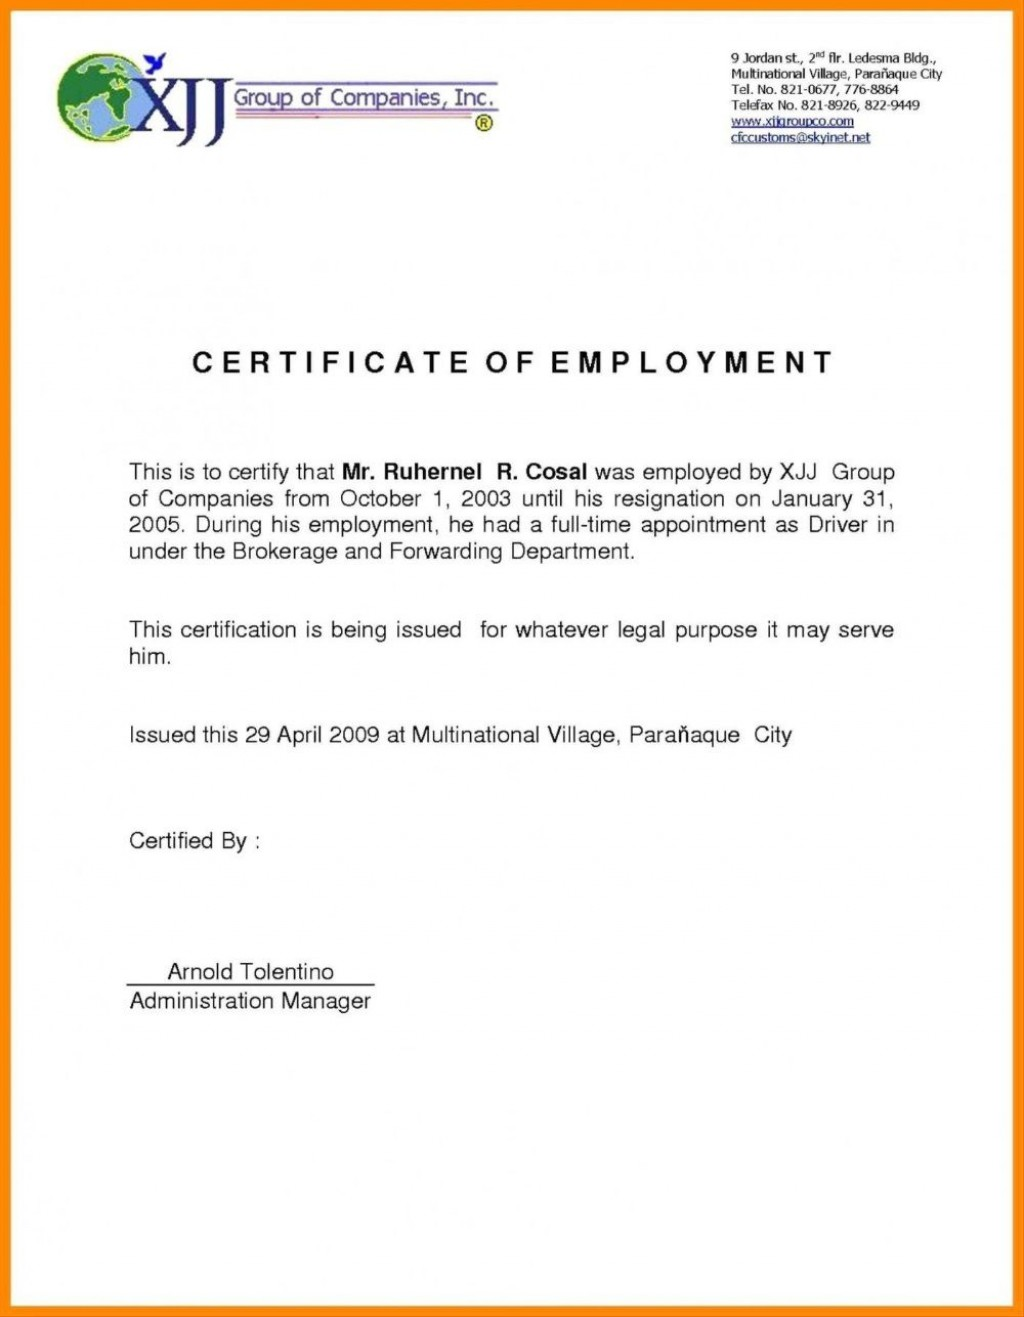 002 Wonderful Certificate Of Employment Template Design  Nz Sample Word Format FreeLarge